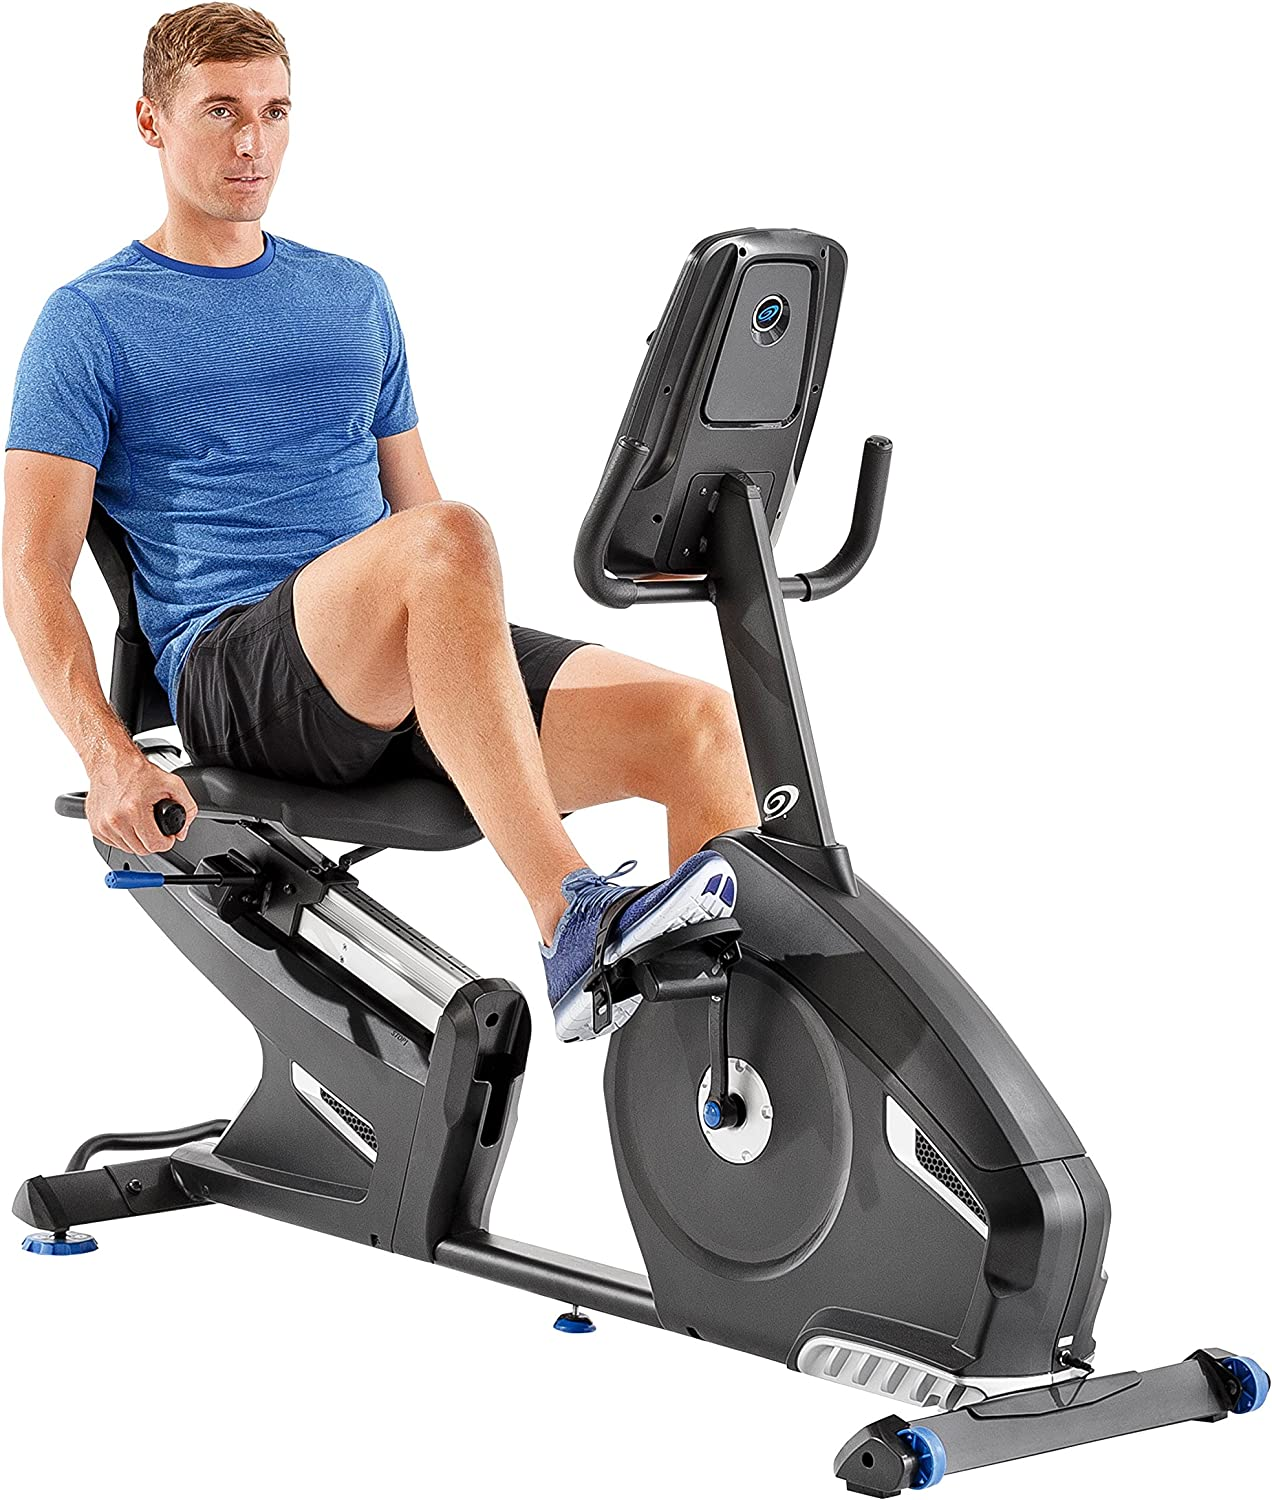 Nautilus Recumbent Bike Series